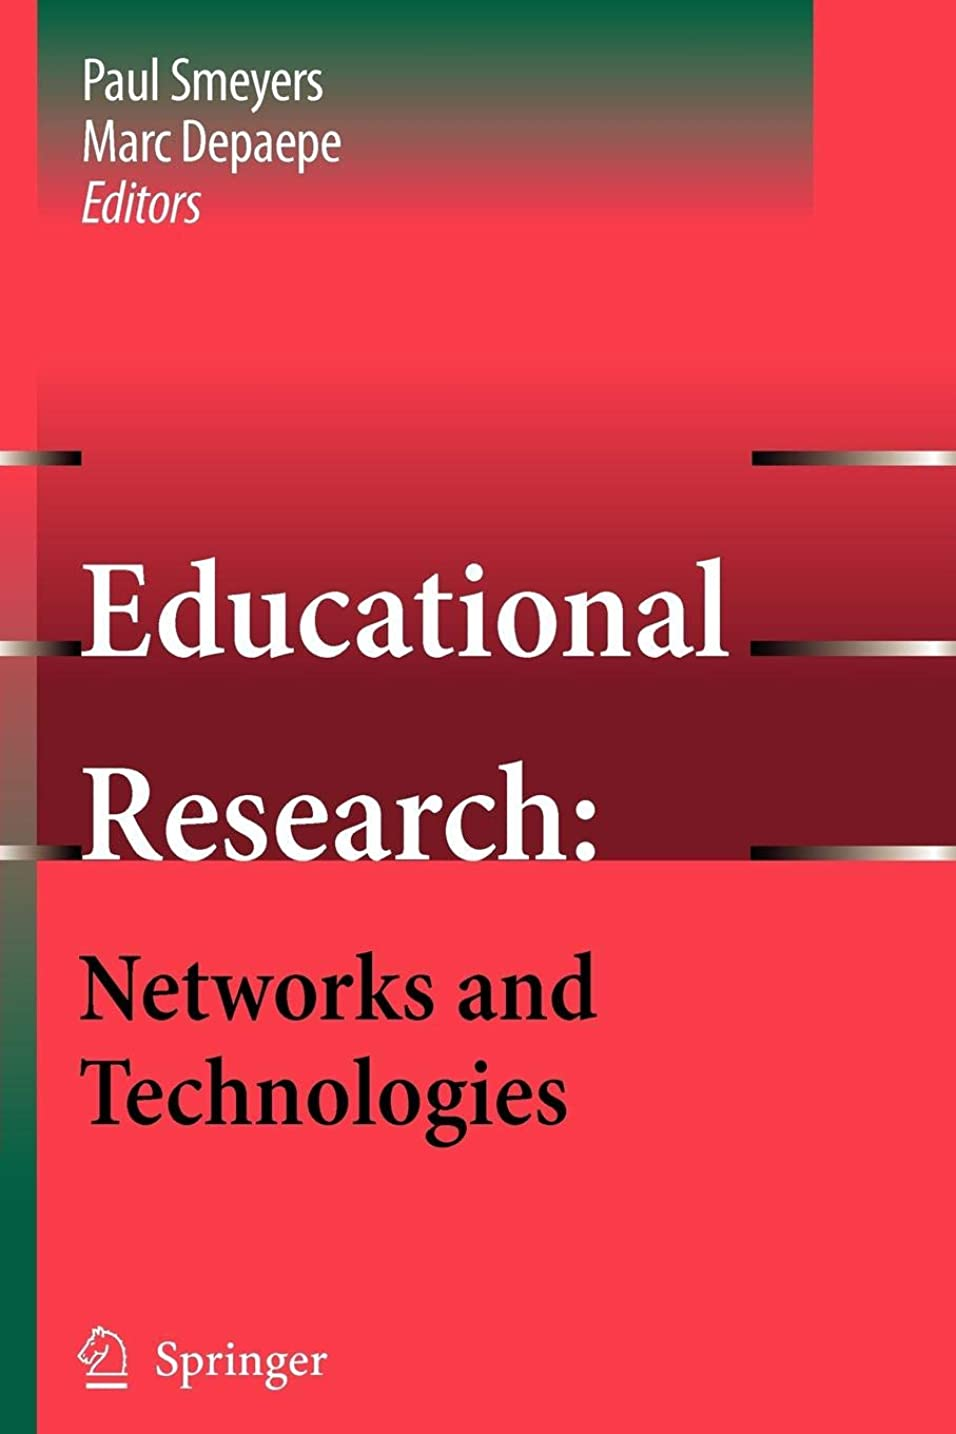 ロマンチック節約する悪党Educational Research: Networks and Technologies: Networks and Technologies